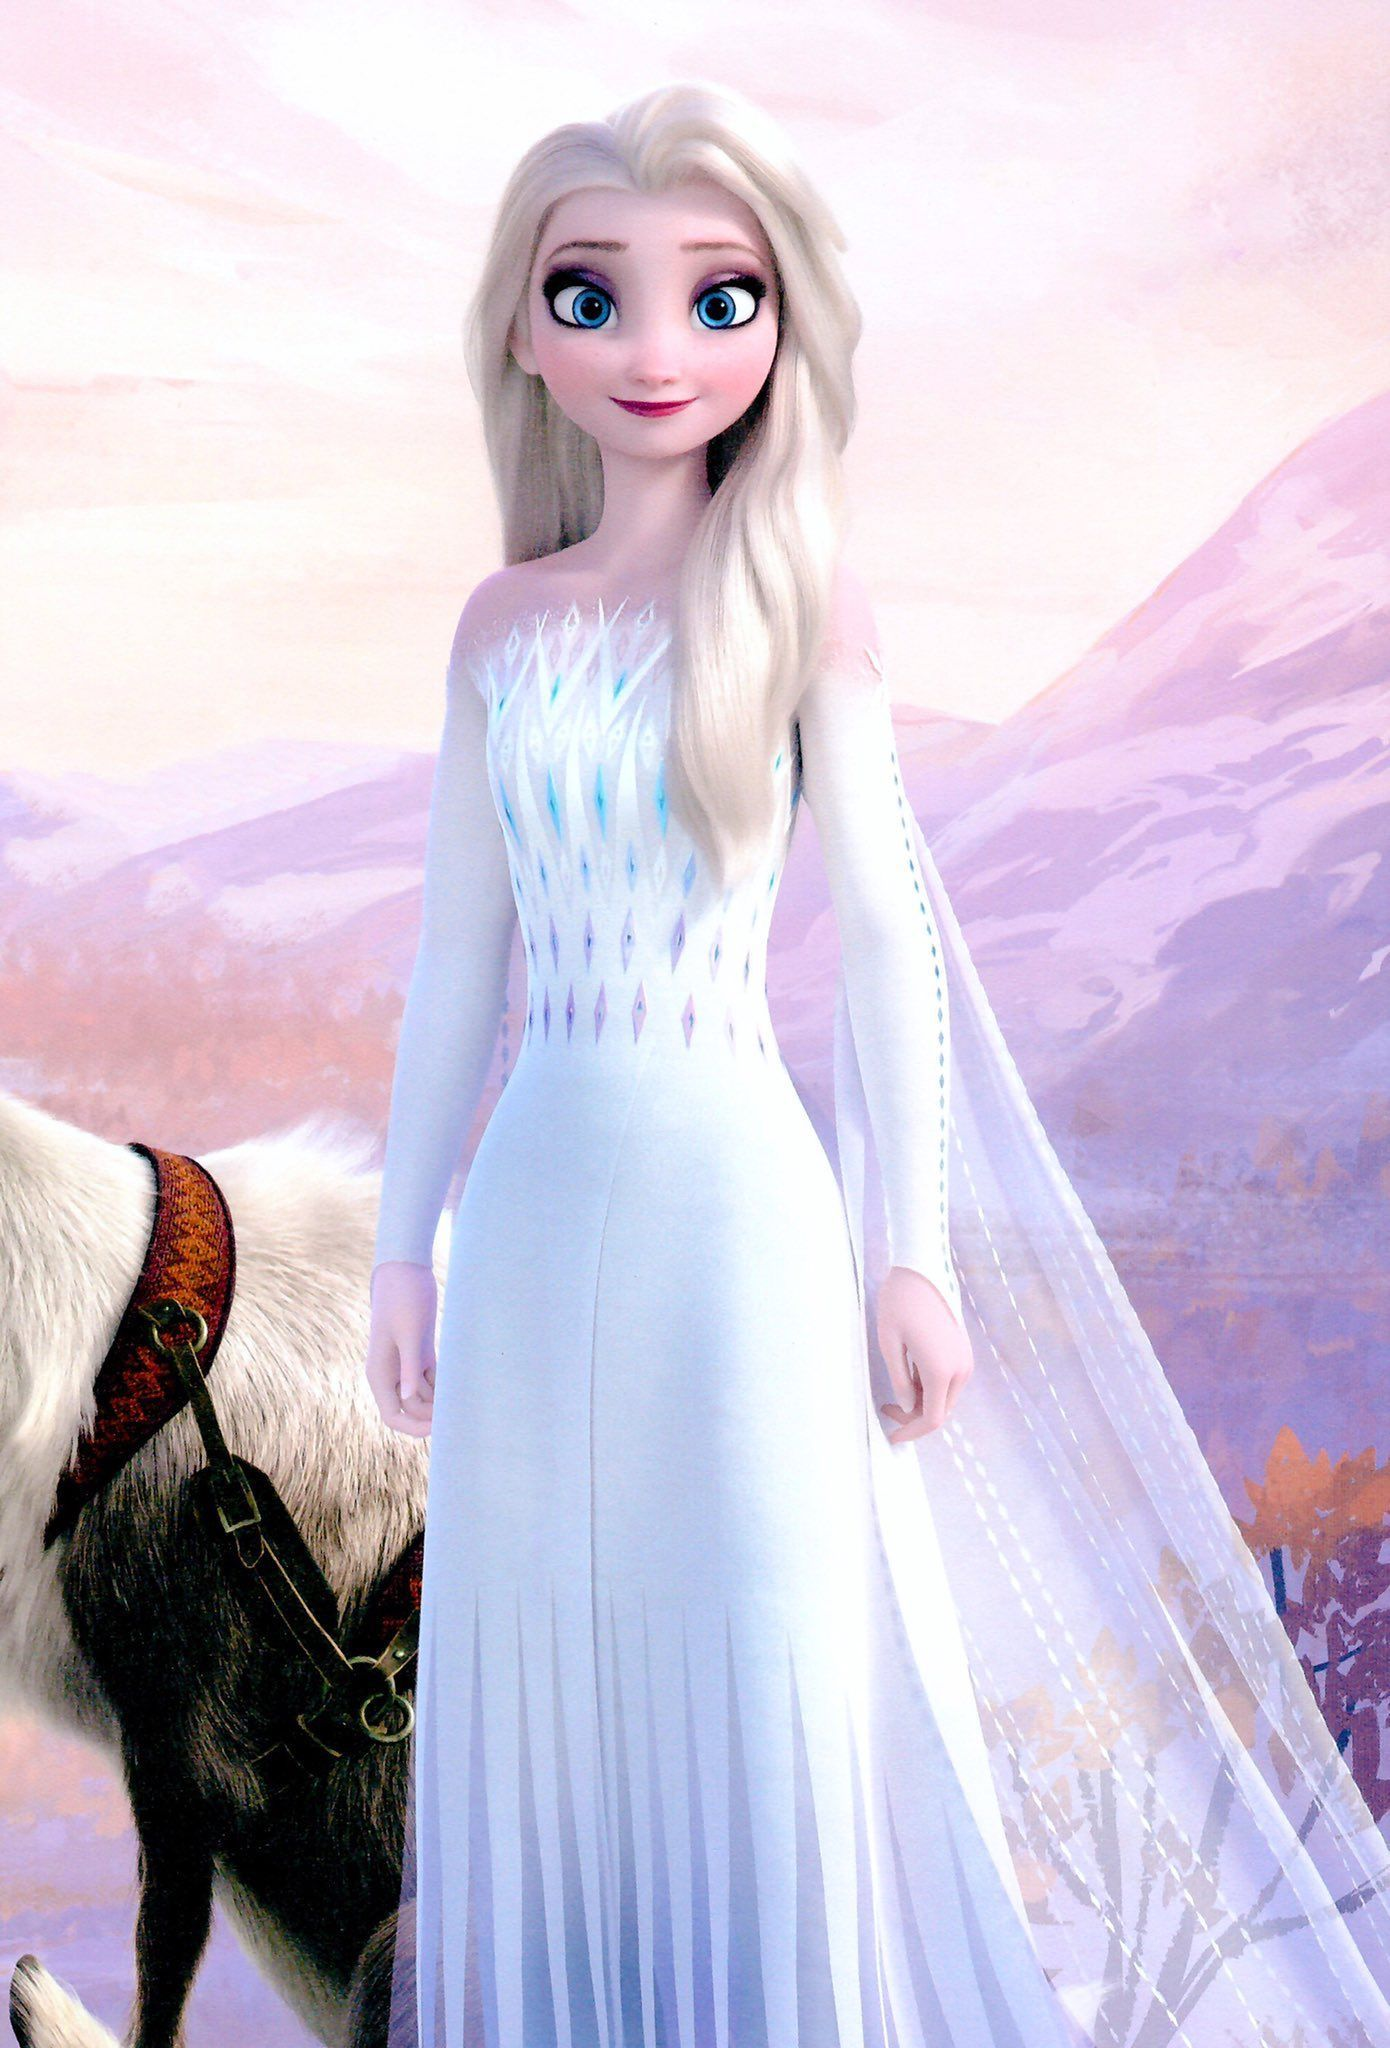 Eviename La Reine Des Neiges Disney Elsa Reine Des Neiges Princesses De Disney Modernes